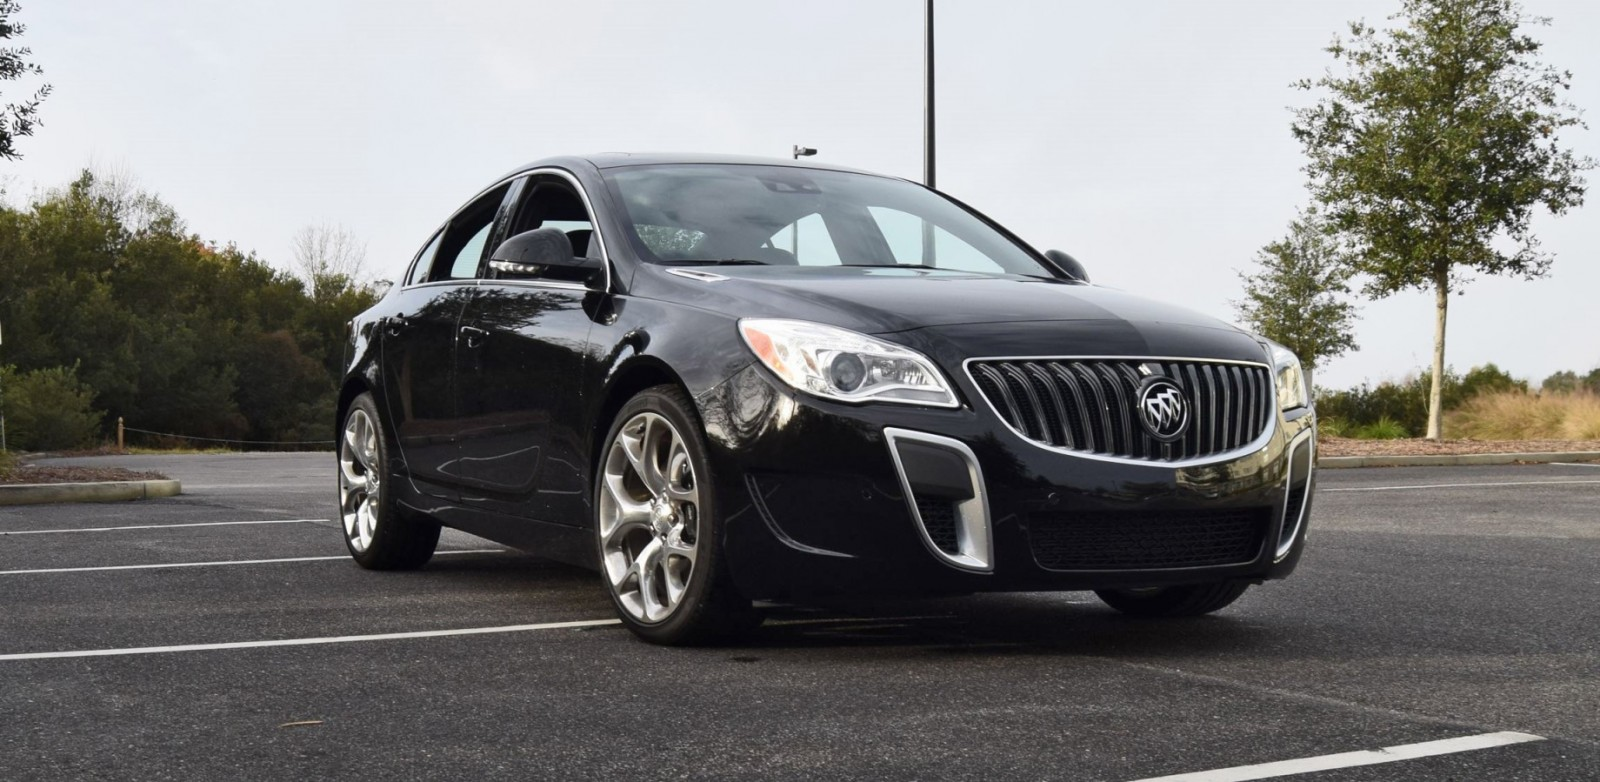 road test review 2016 buick regal gs 21. Cars Review. Best American Auto & Cars Review